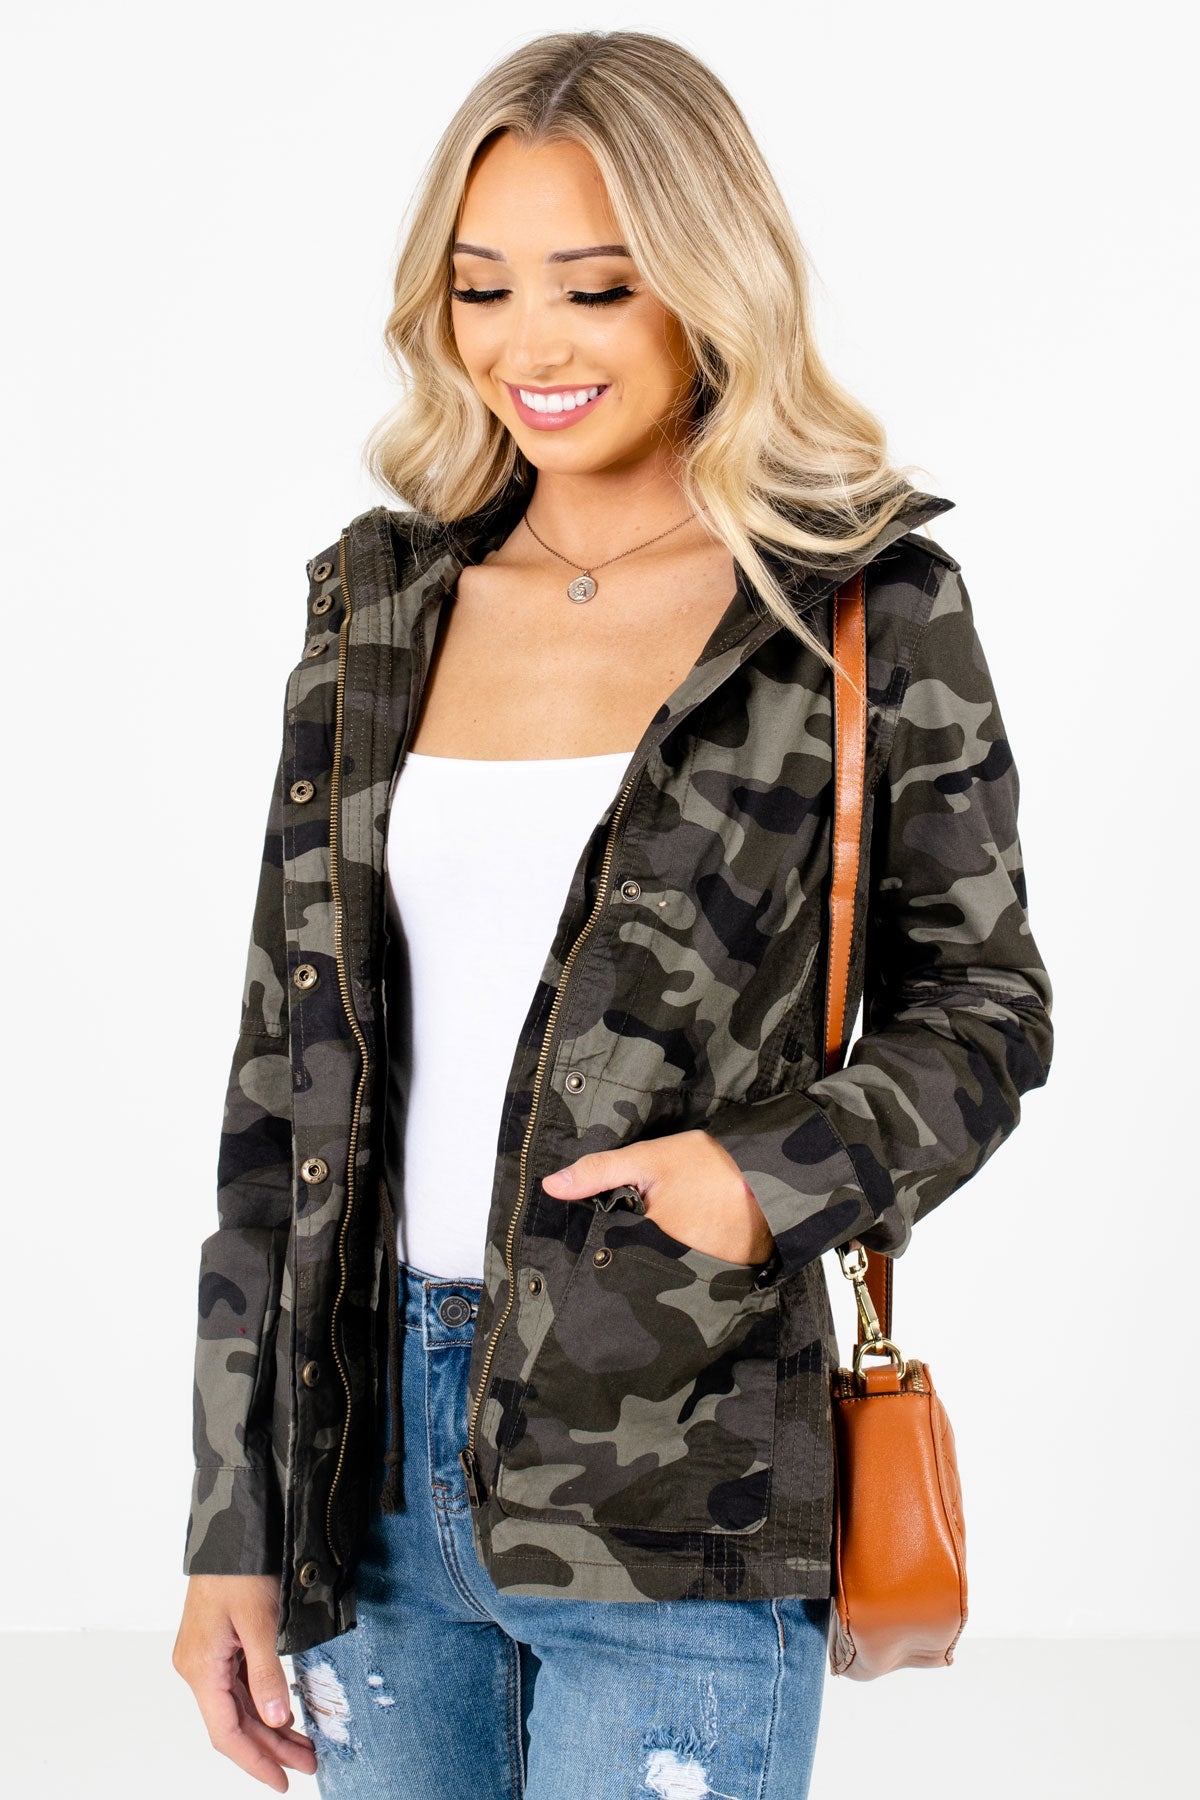 Green Camouflage Patterned Boutique Jackets for Women